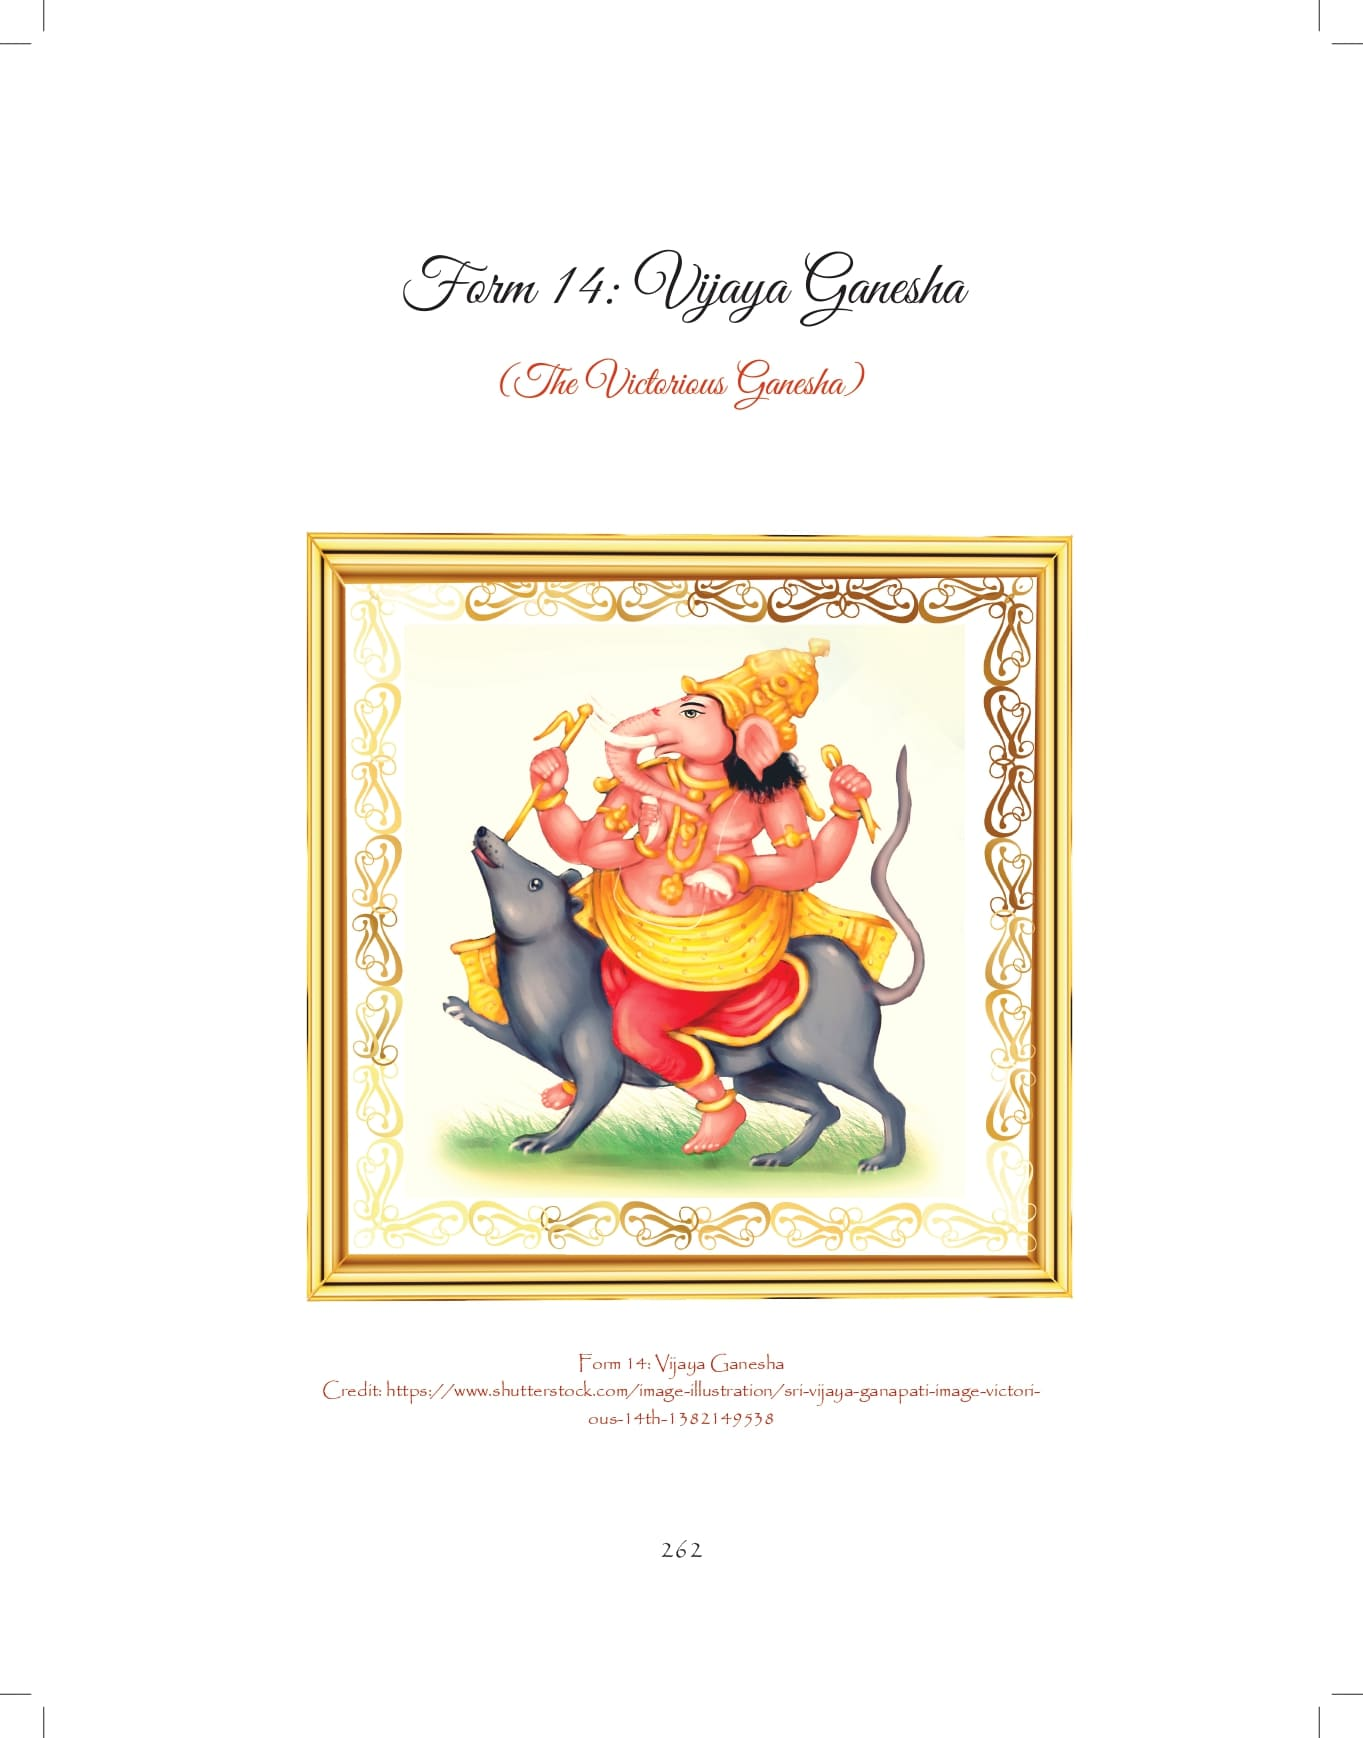 Ganesh-print_pages-to-jpg-0262.jpg